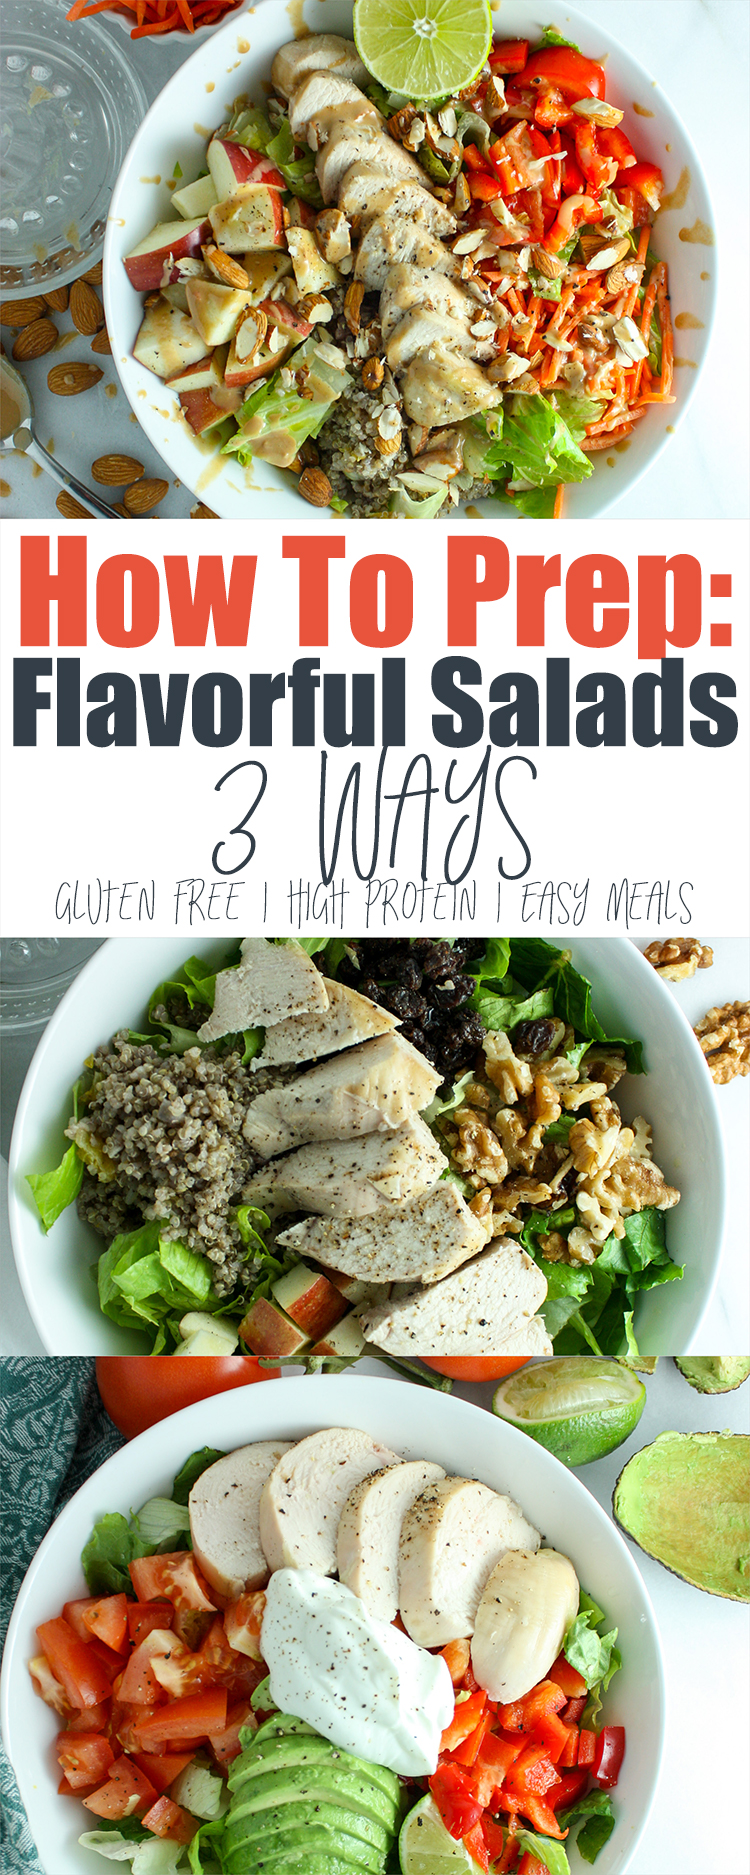 How To Prep Flavorful Salads 3 Ways